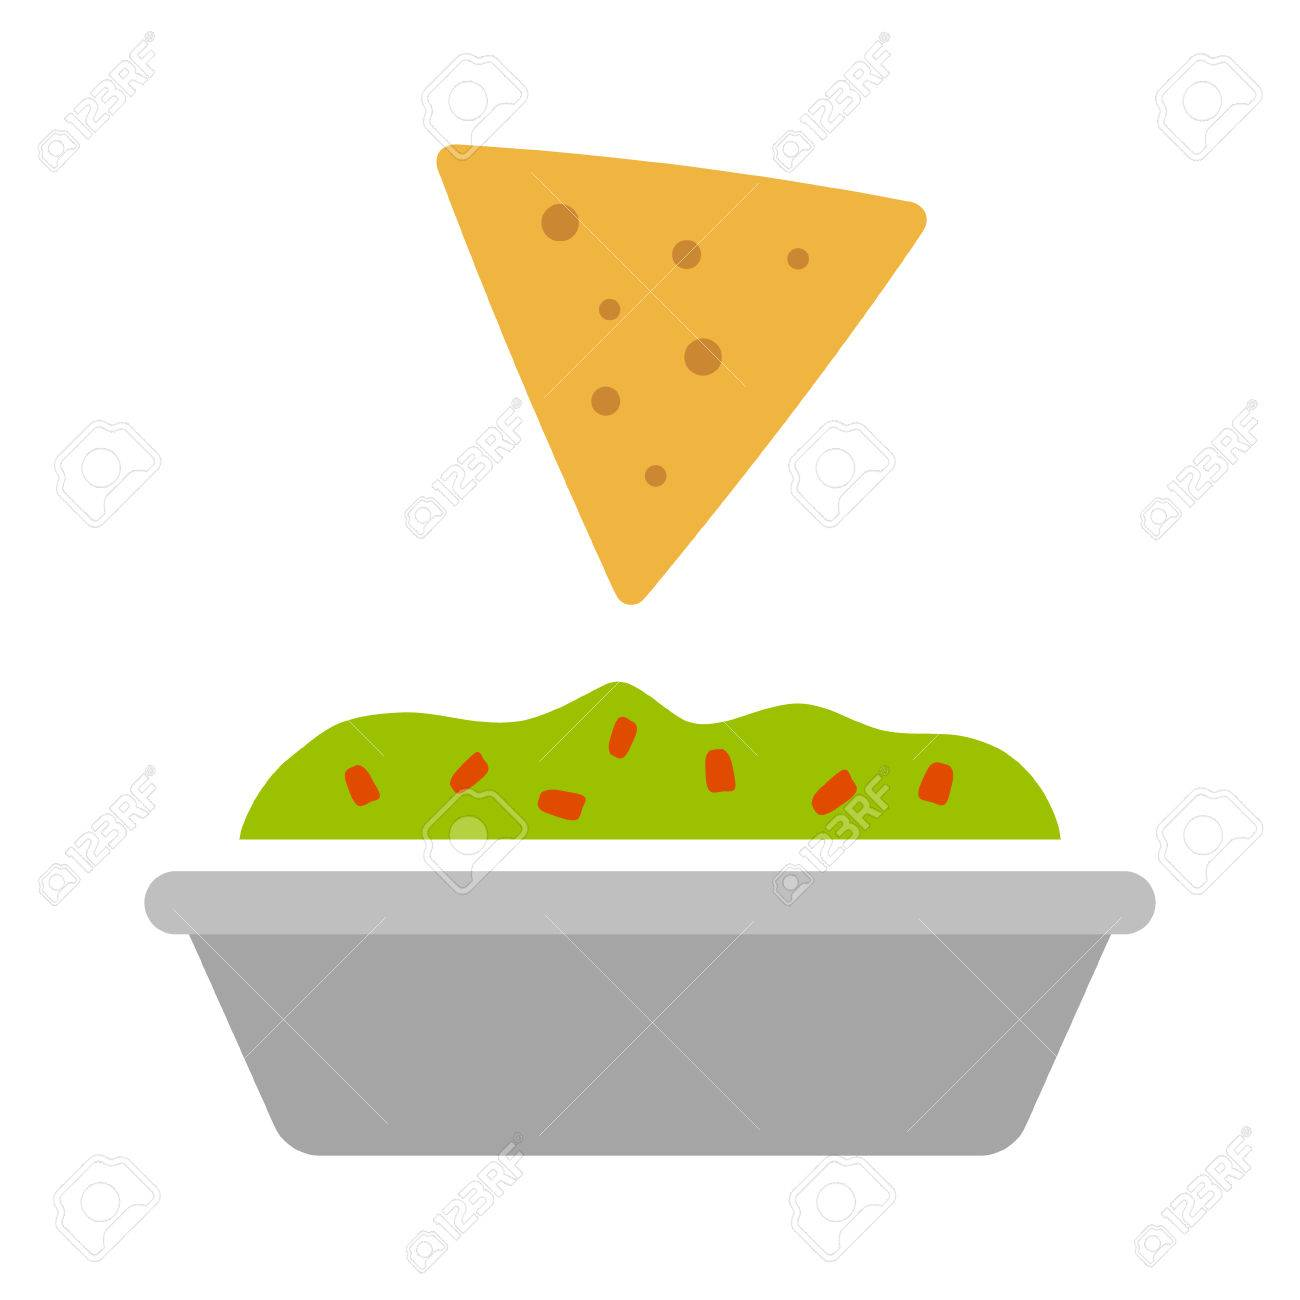 Tortilla chip clipart 3 » Clipart Station.